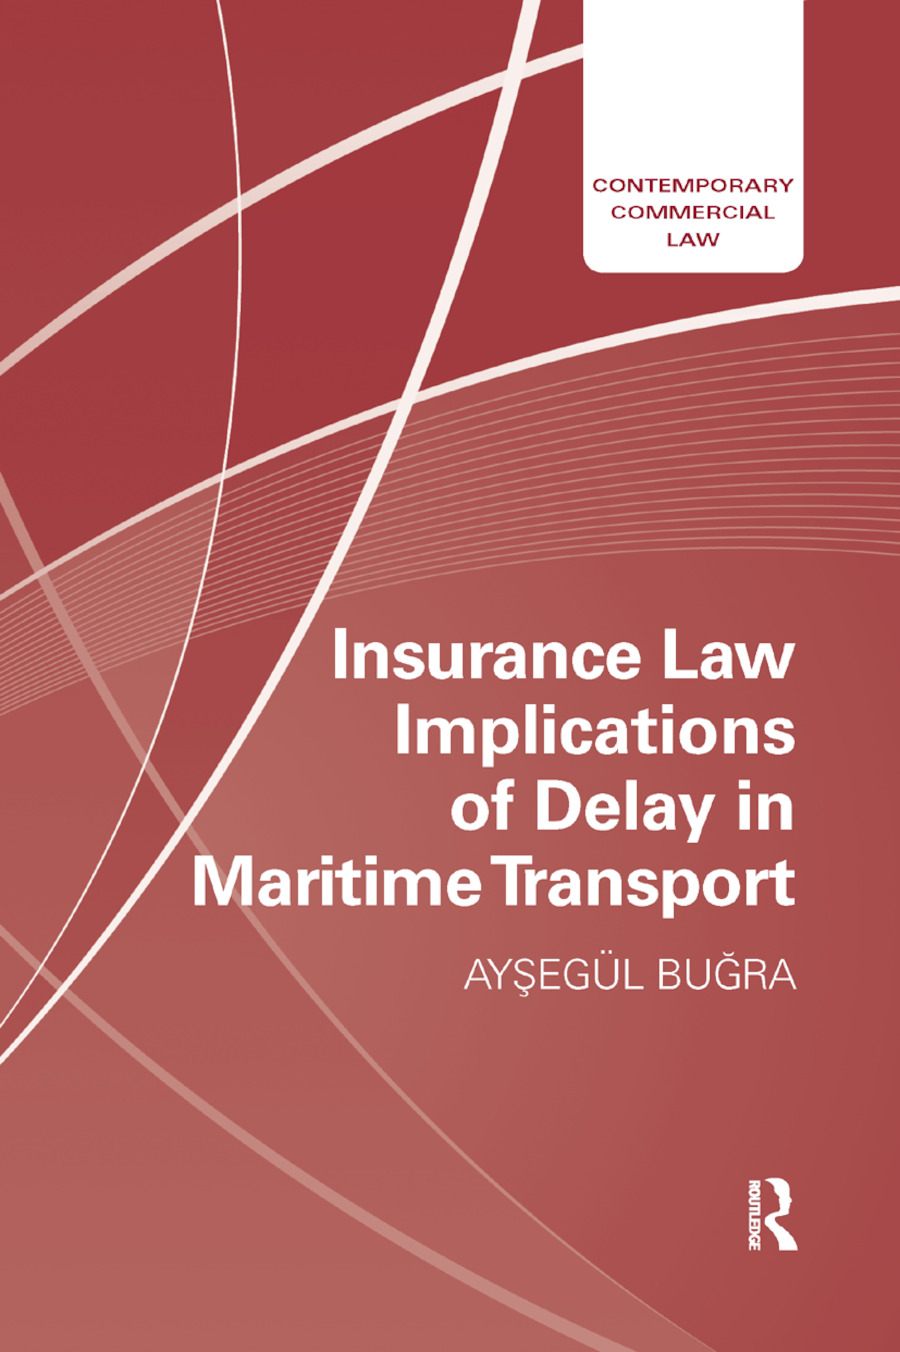 Insurance Law Implications of Delay in Maritime Transport book cover